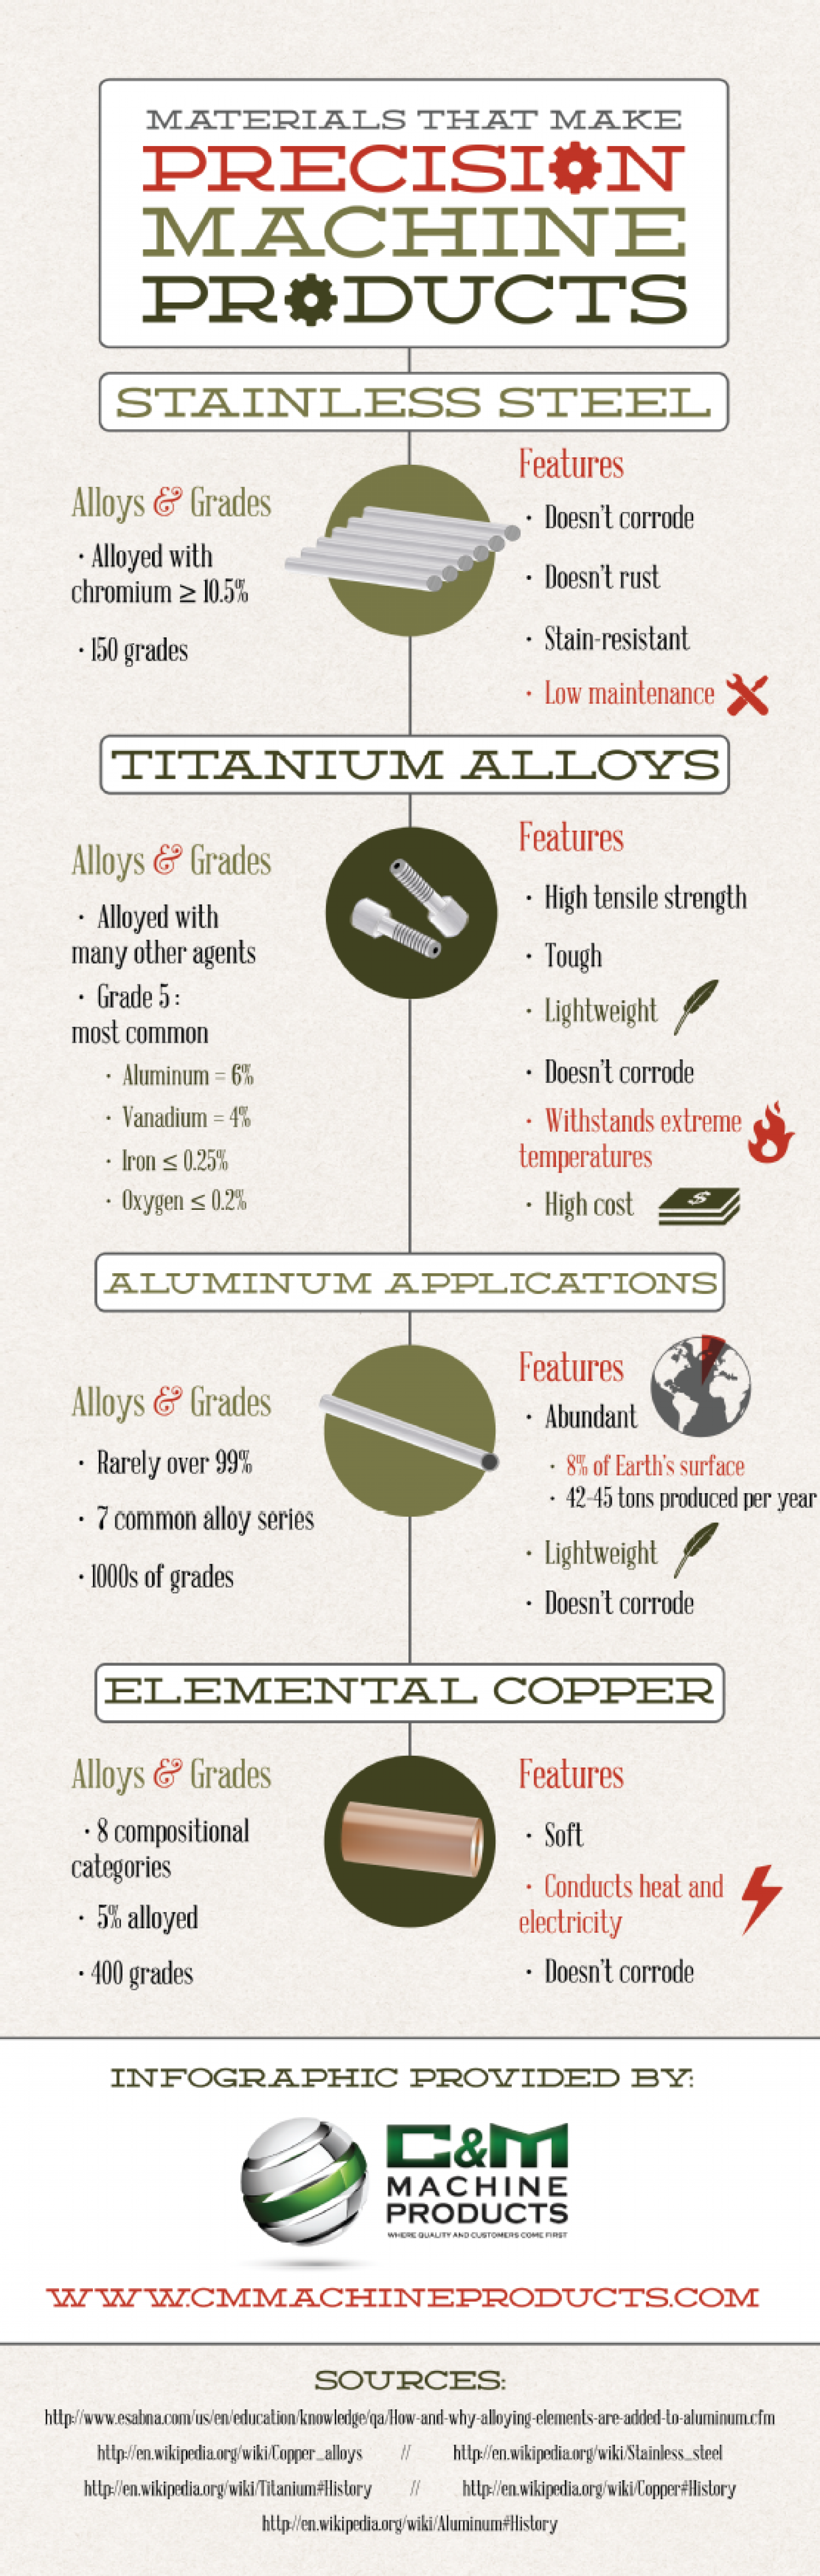 Materials That Make Precision Machine Products Infographic